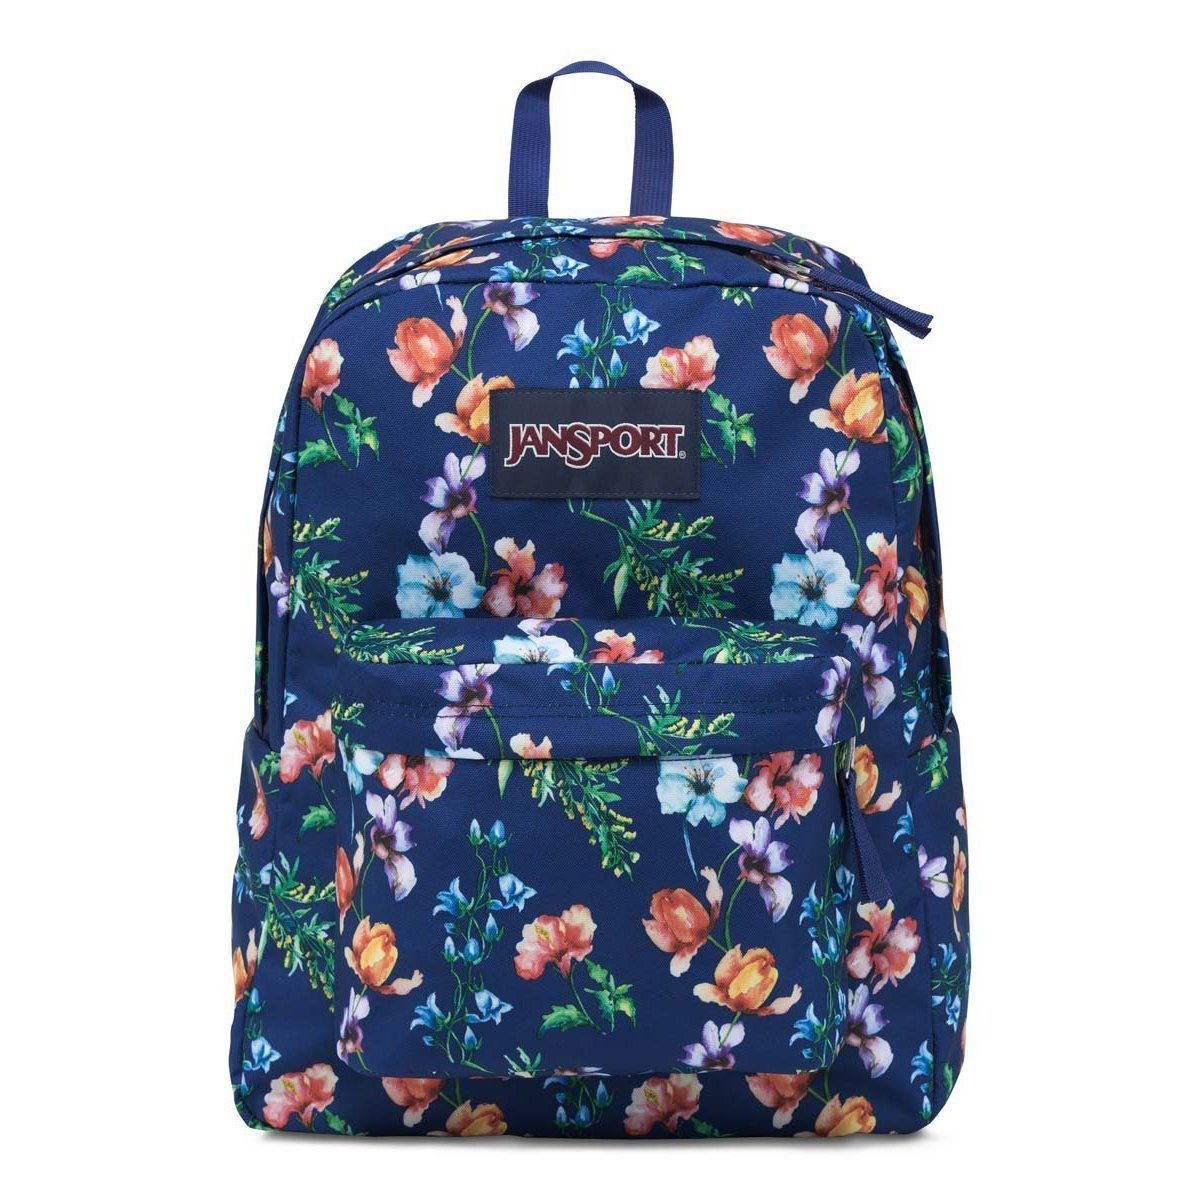 Jansport Superbreak Backpack- Multi Navy Mountain Meadow | Back to ...